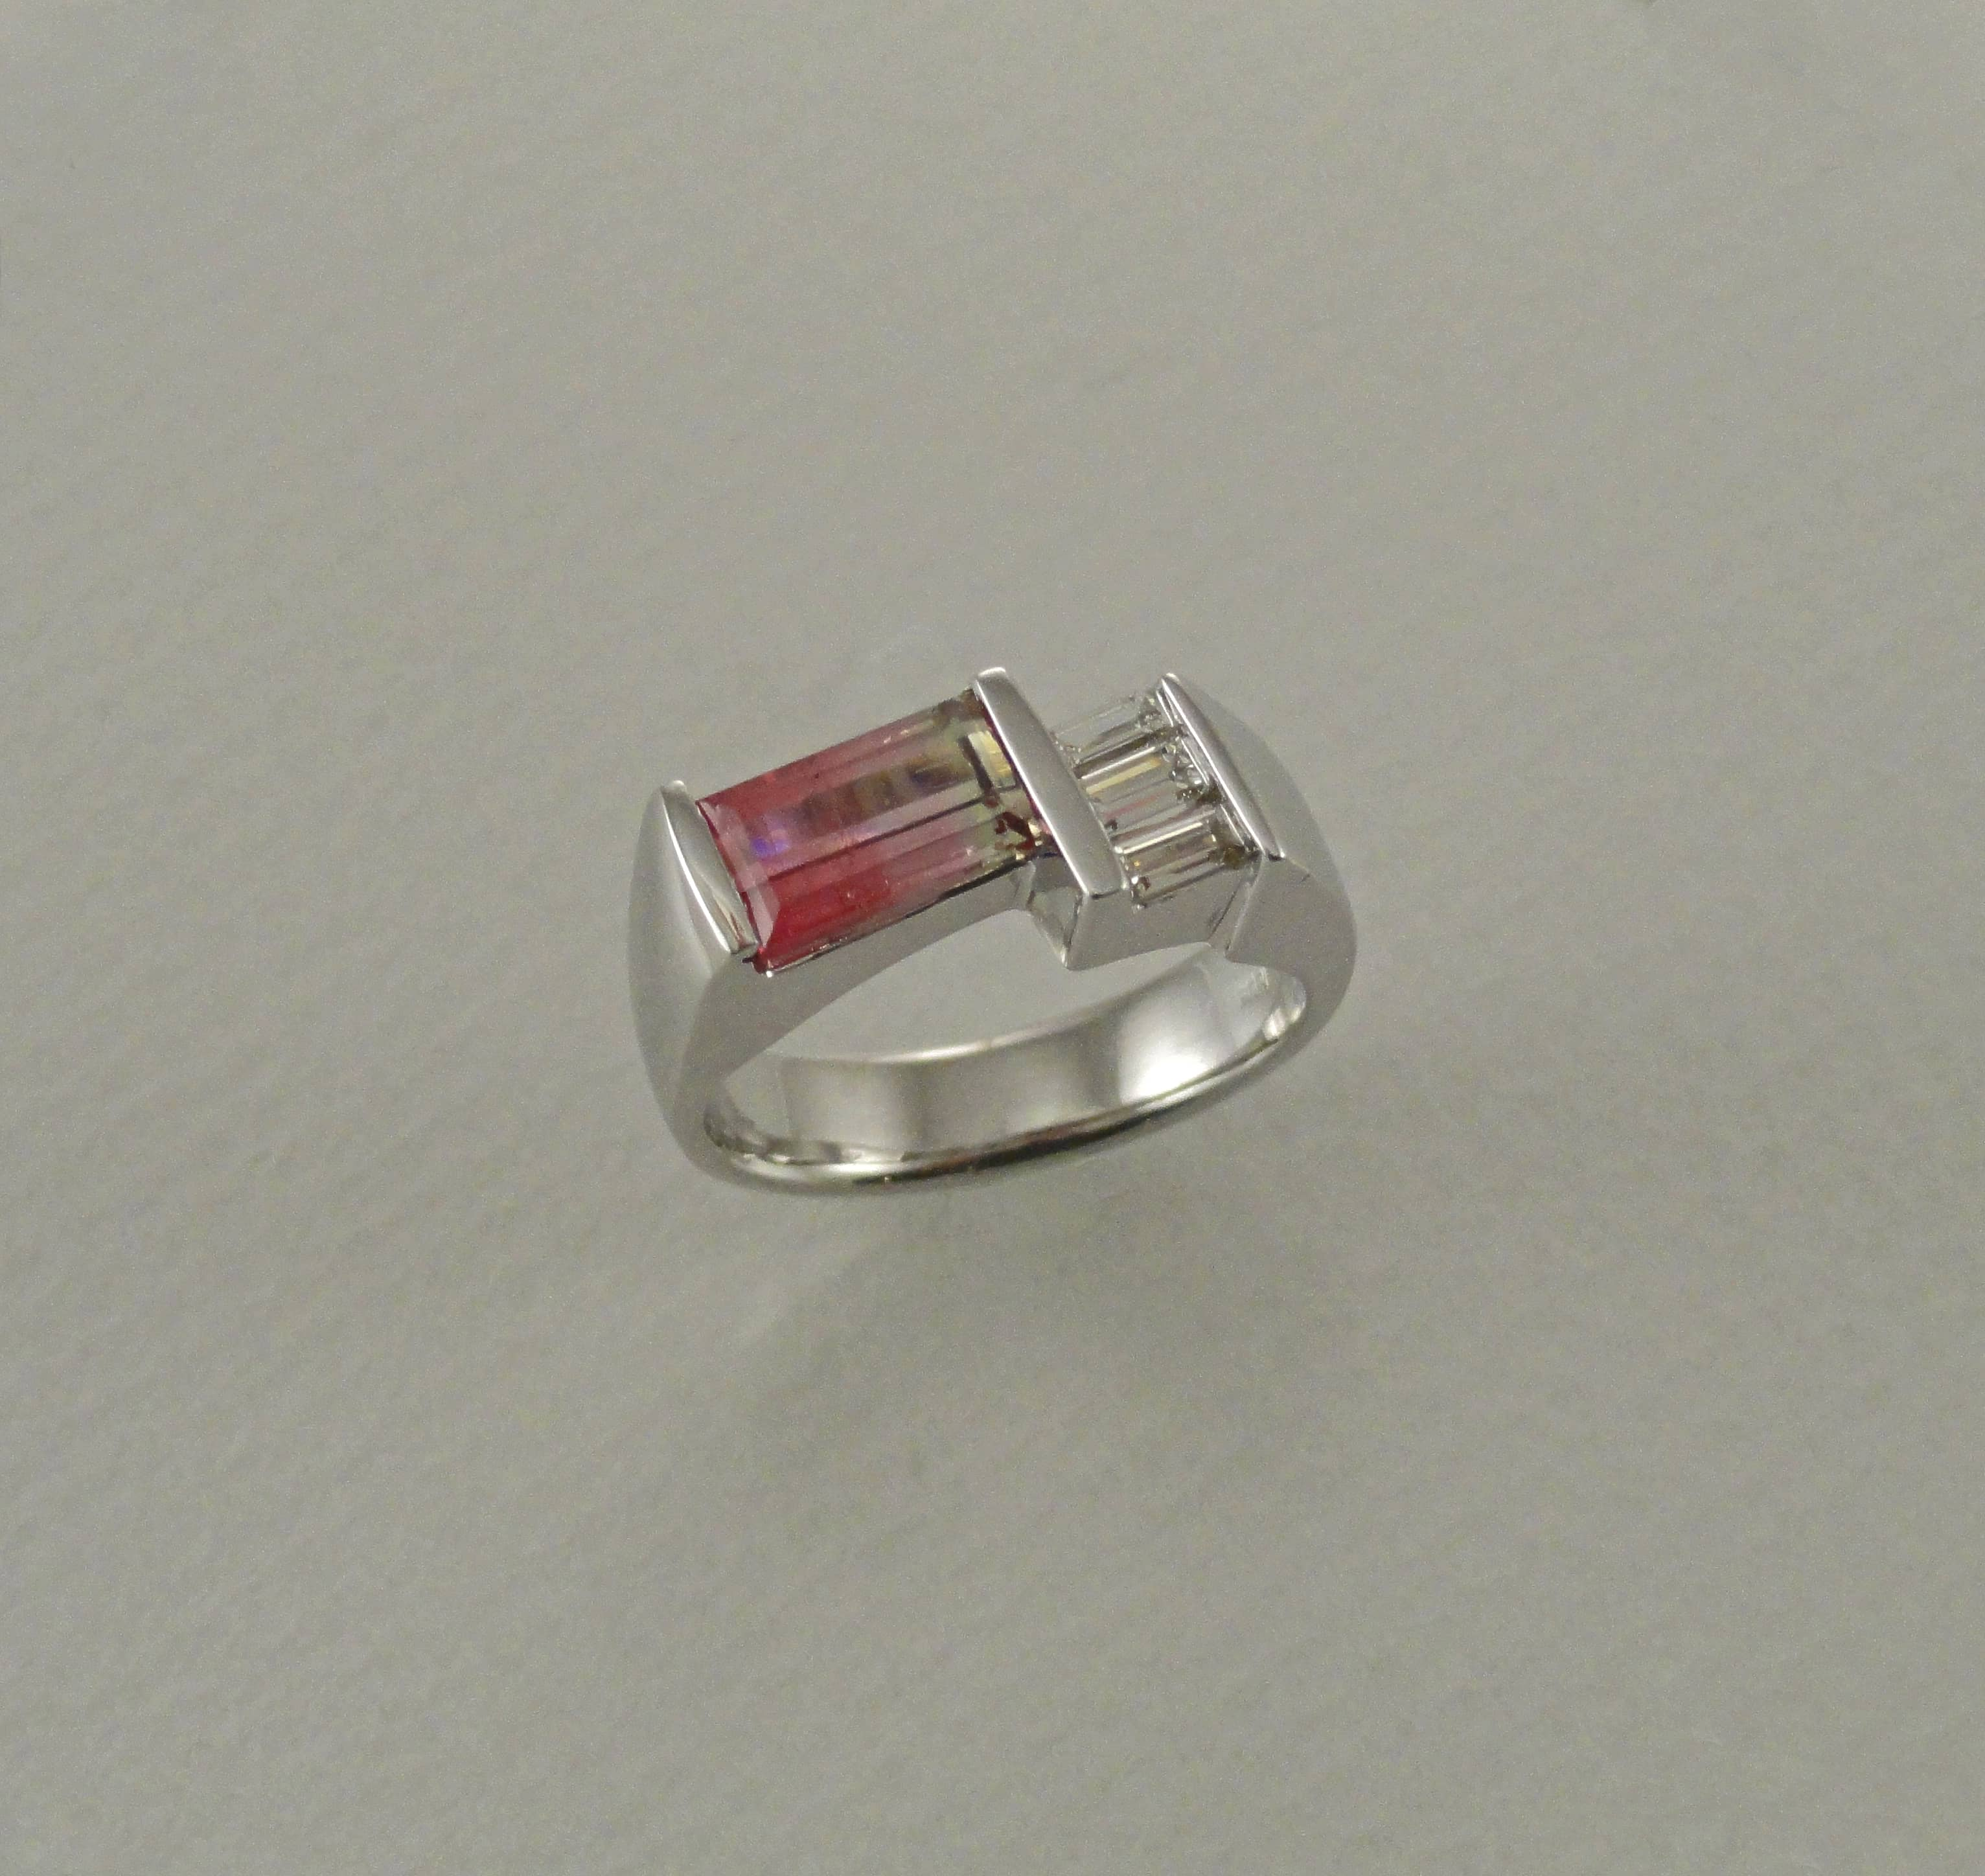 Bicolor Tourmaline Geometric Ring  Summit Jewelers  7821 Big Bend Blvd  Webster Groves MO